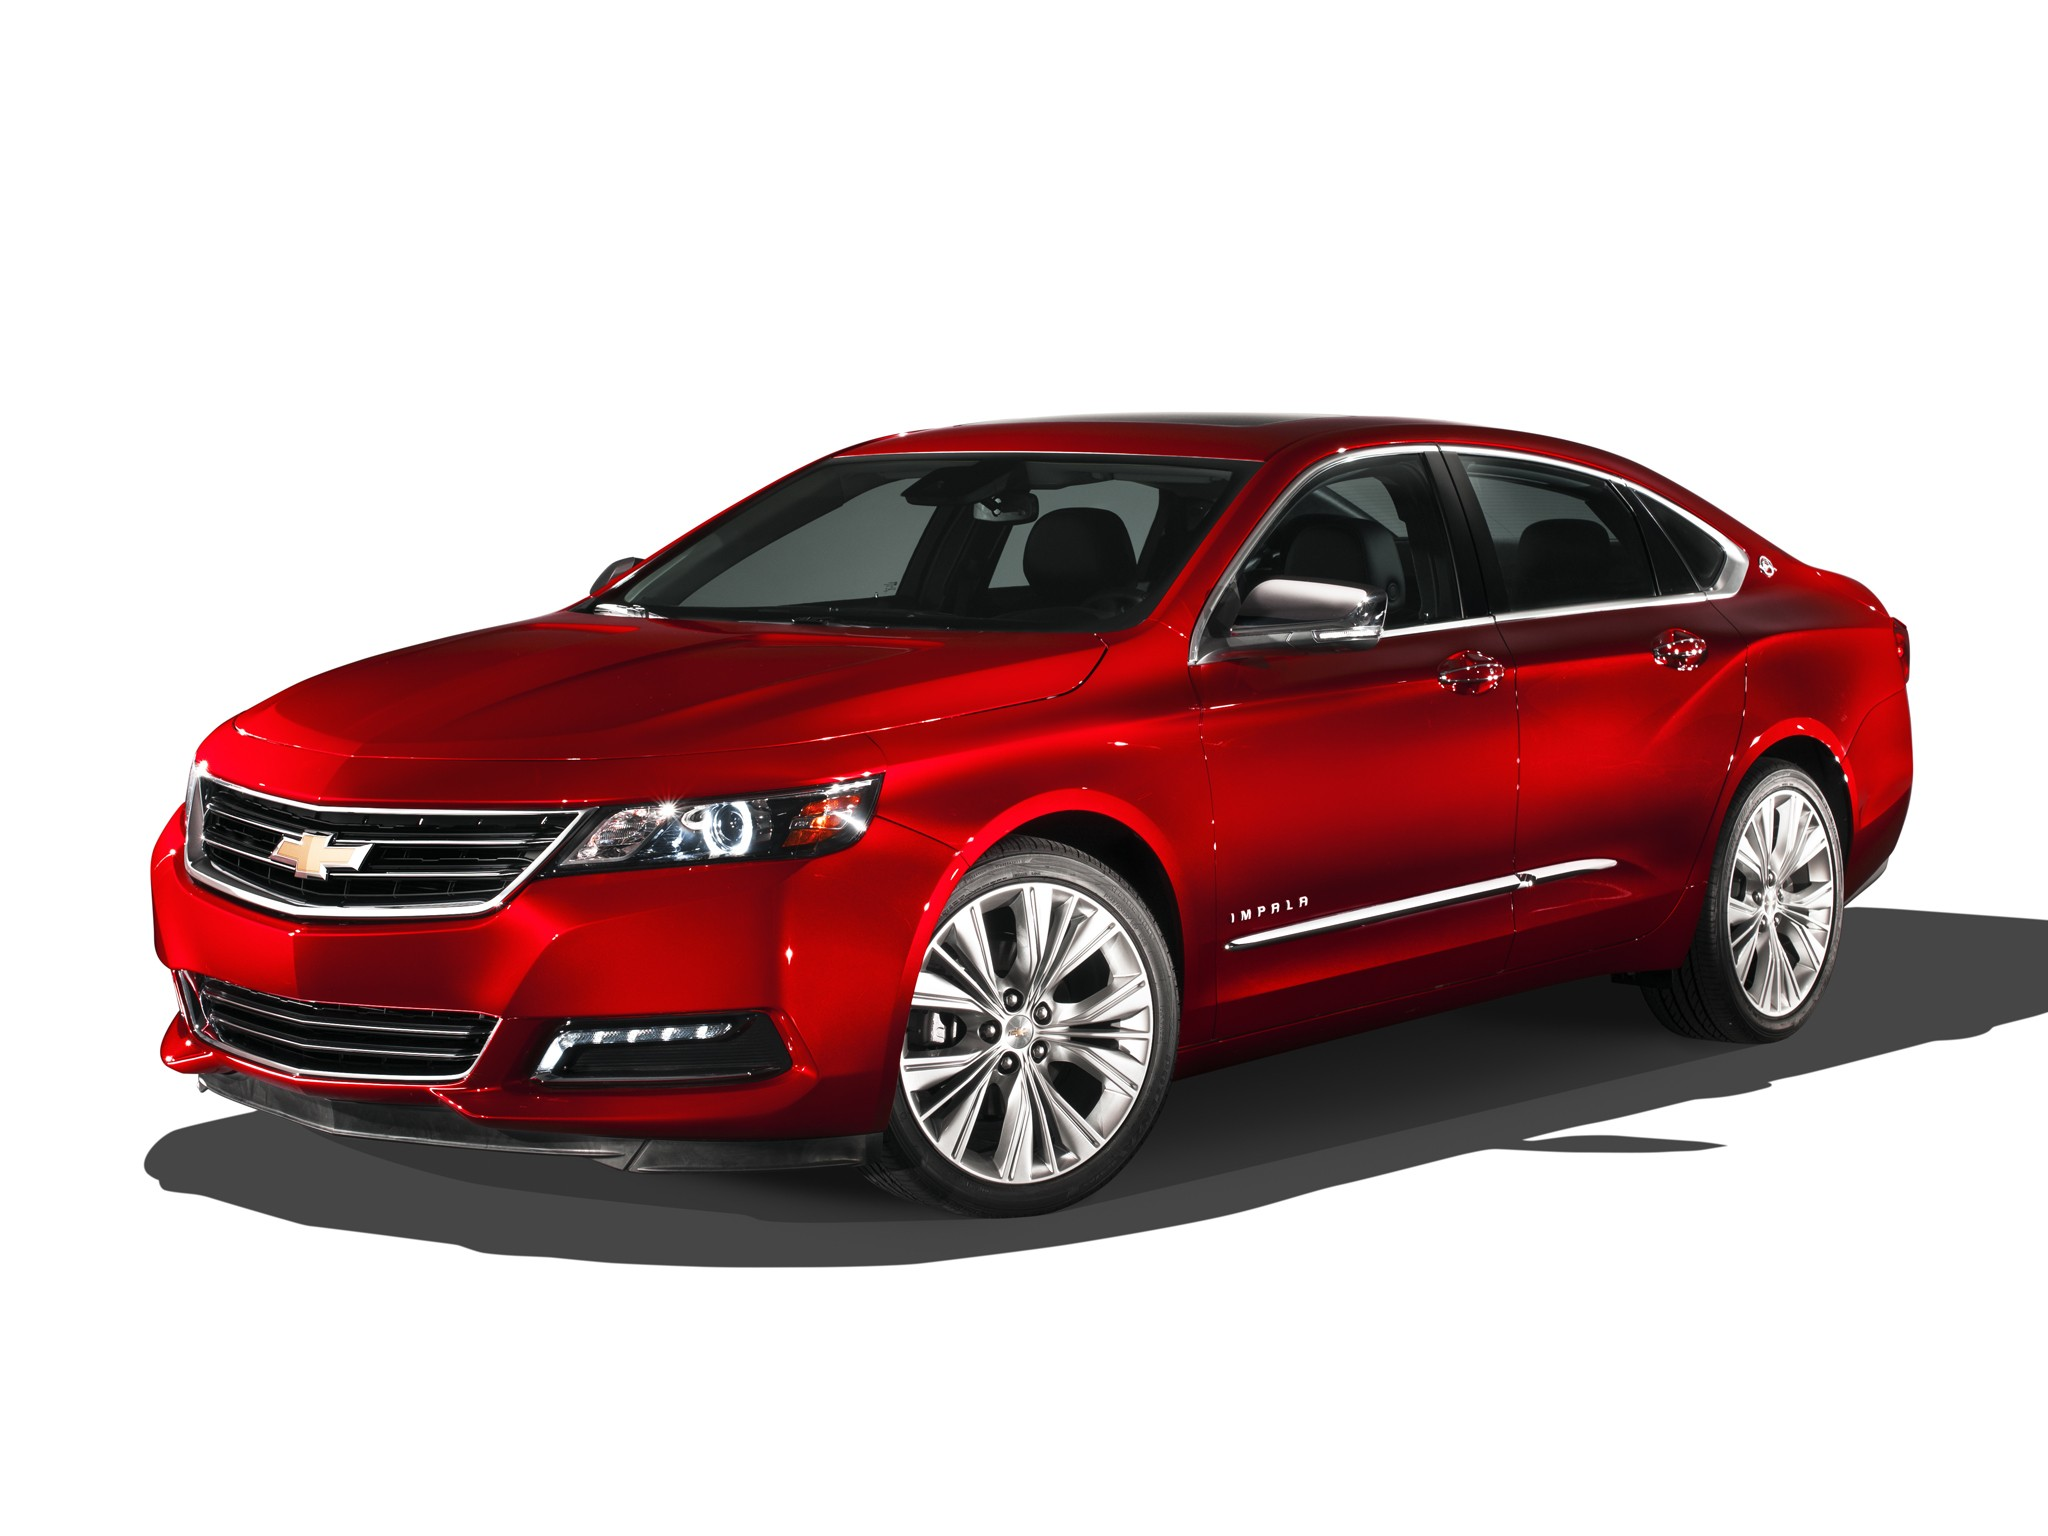 chevrolet impala specs 2013 2014 2015 2016 2017. Cars Review. Best American Auto & Cars Review